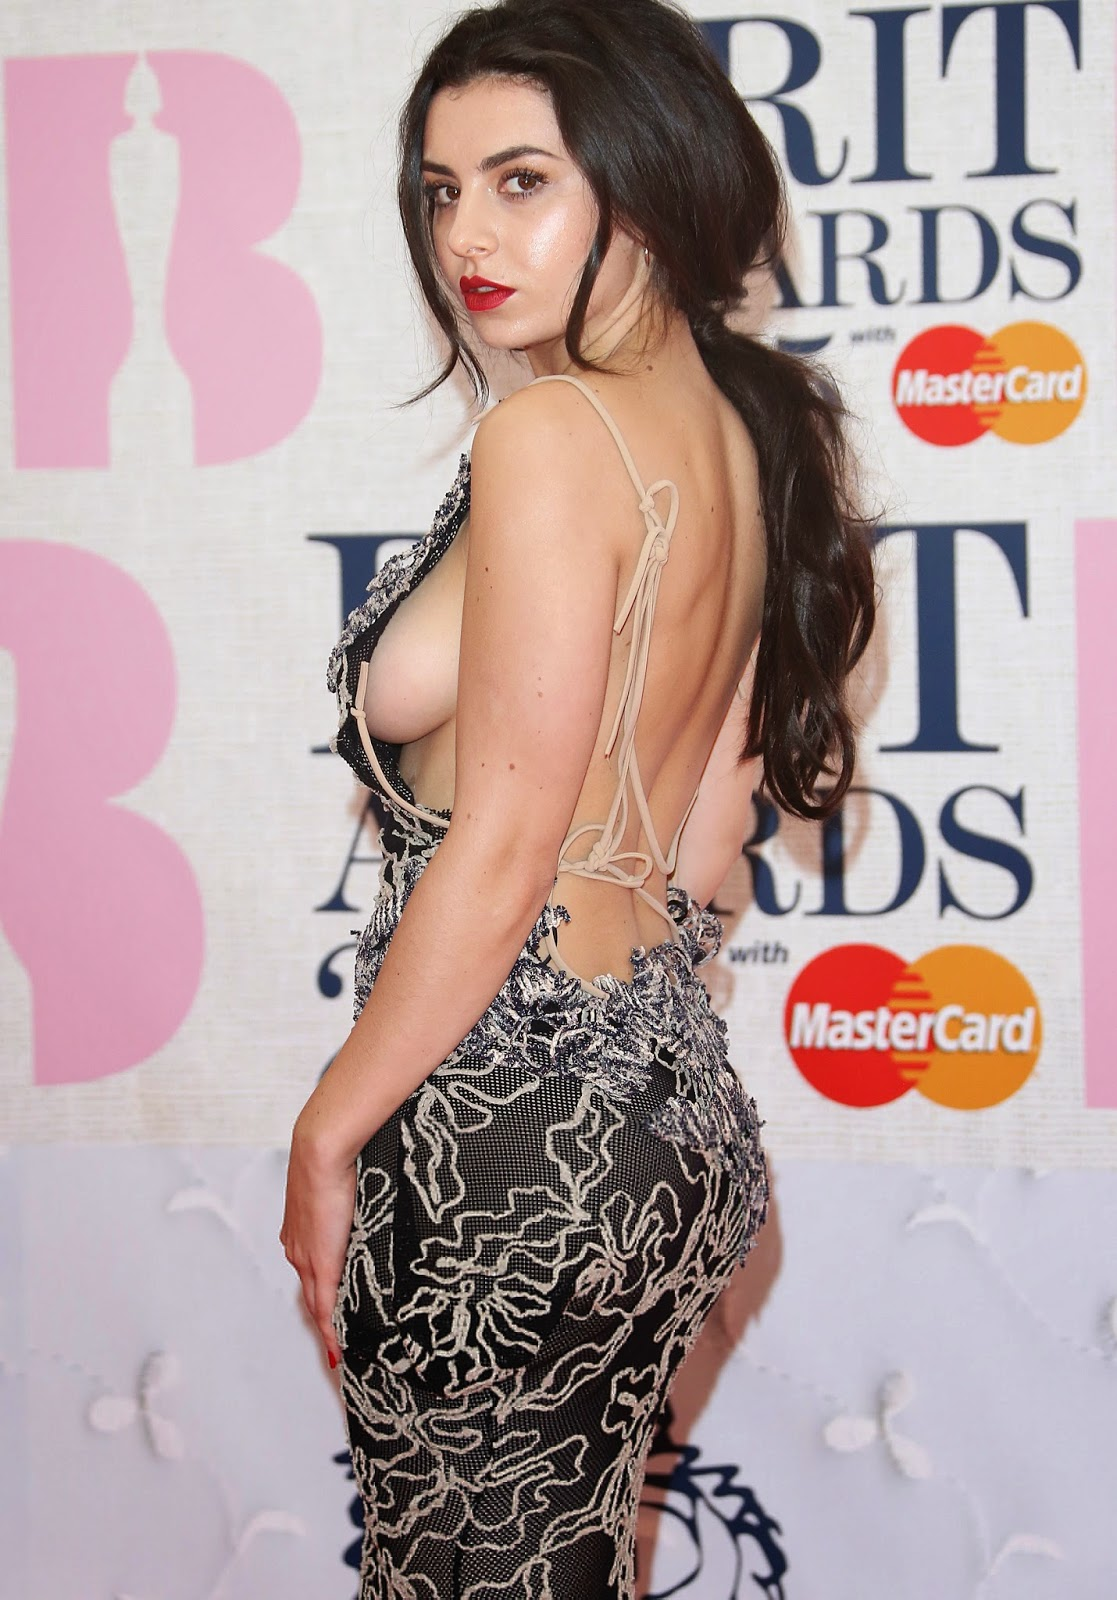 Charli XCX's Sideboob For The Win